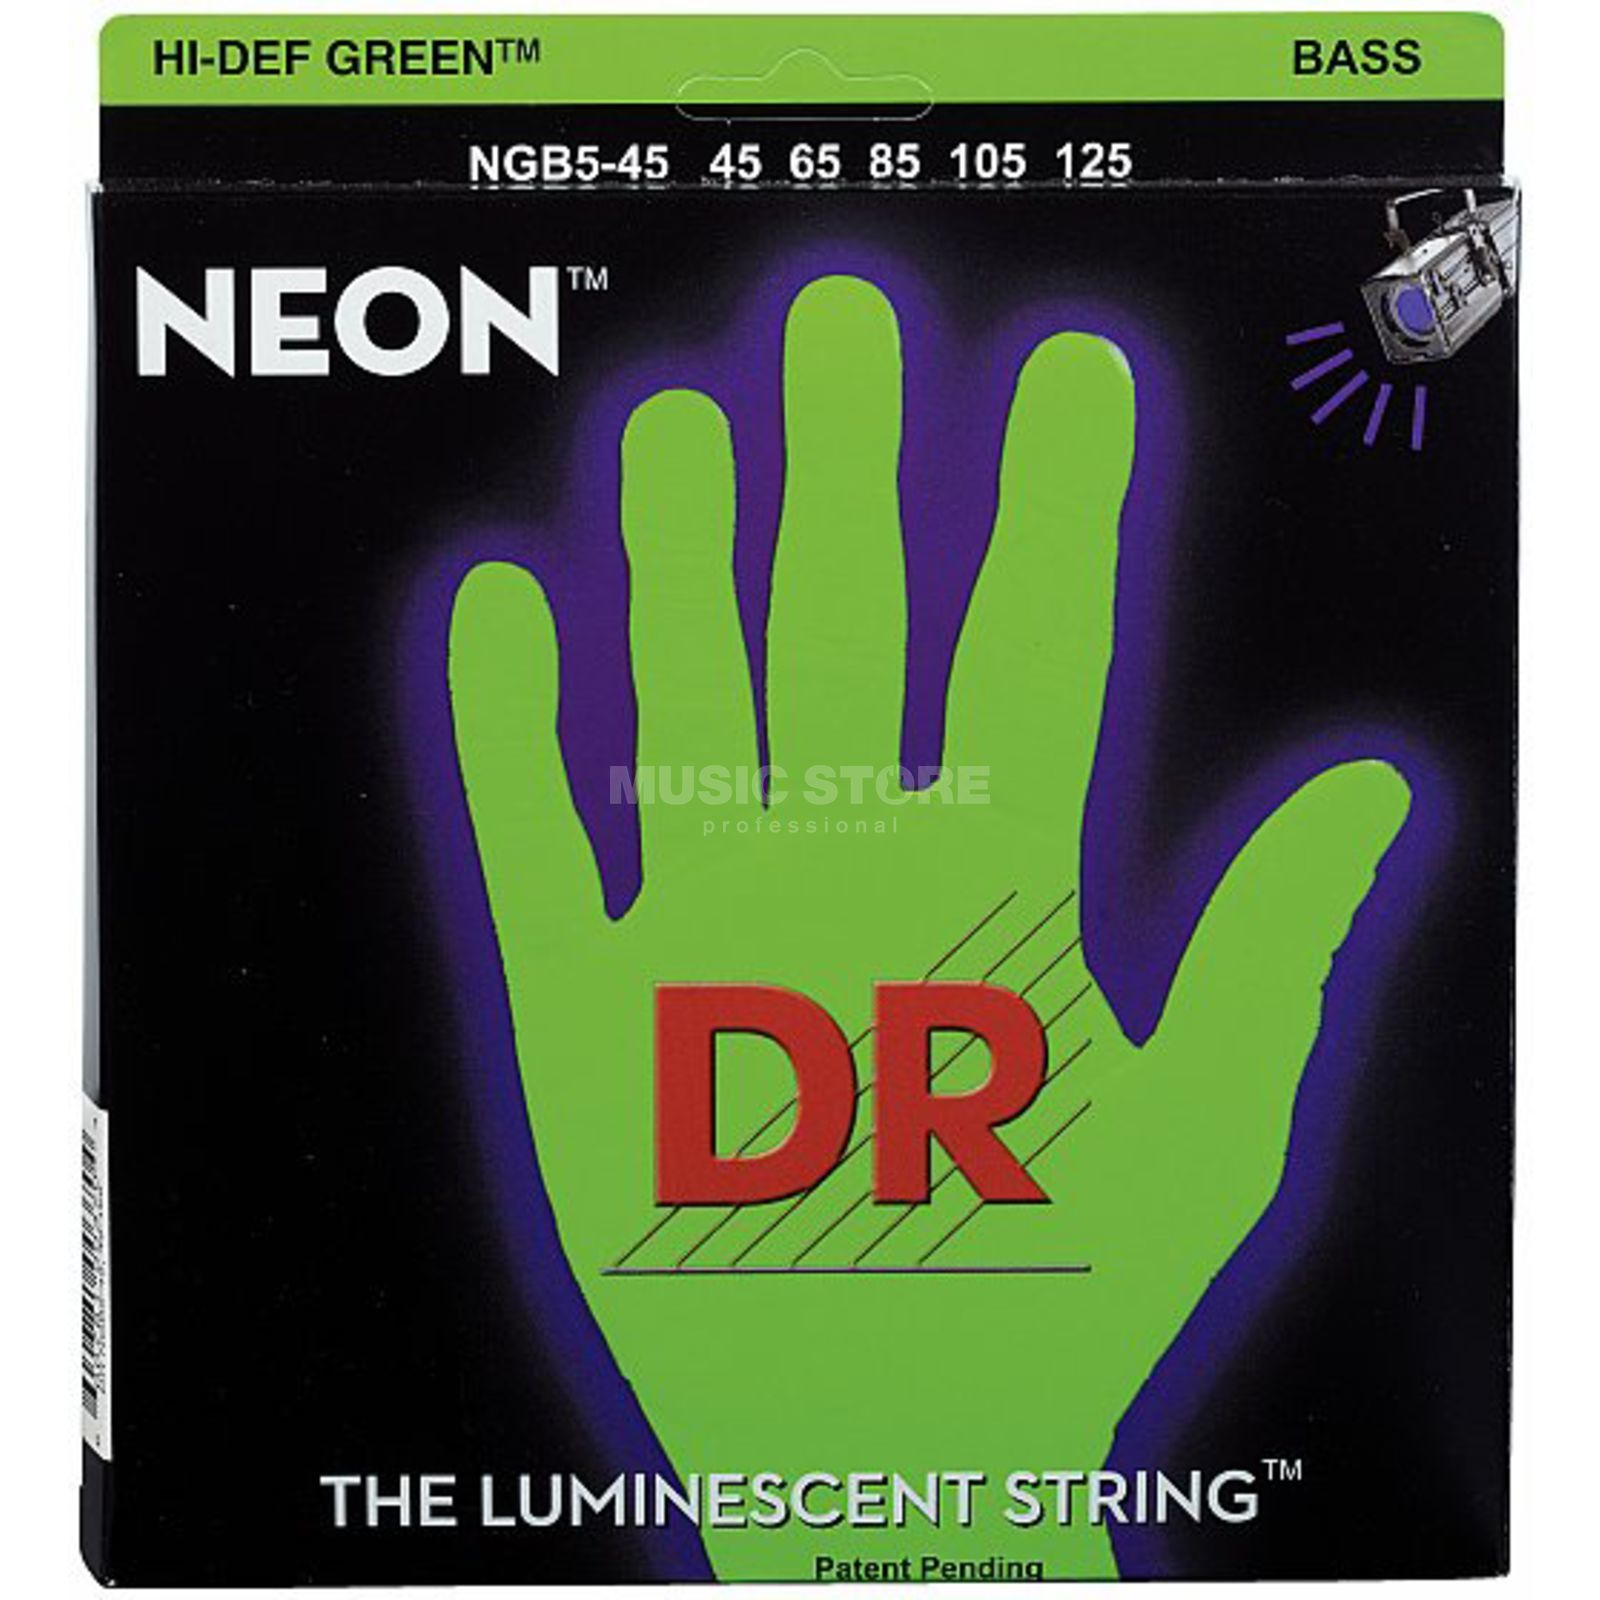 DR 5 Bass Strings 45-125 Hi-Def Neon Green Neon NGB5-45 Product Image